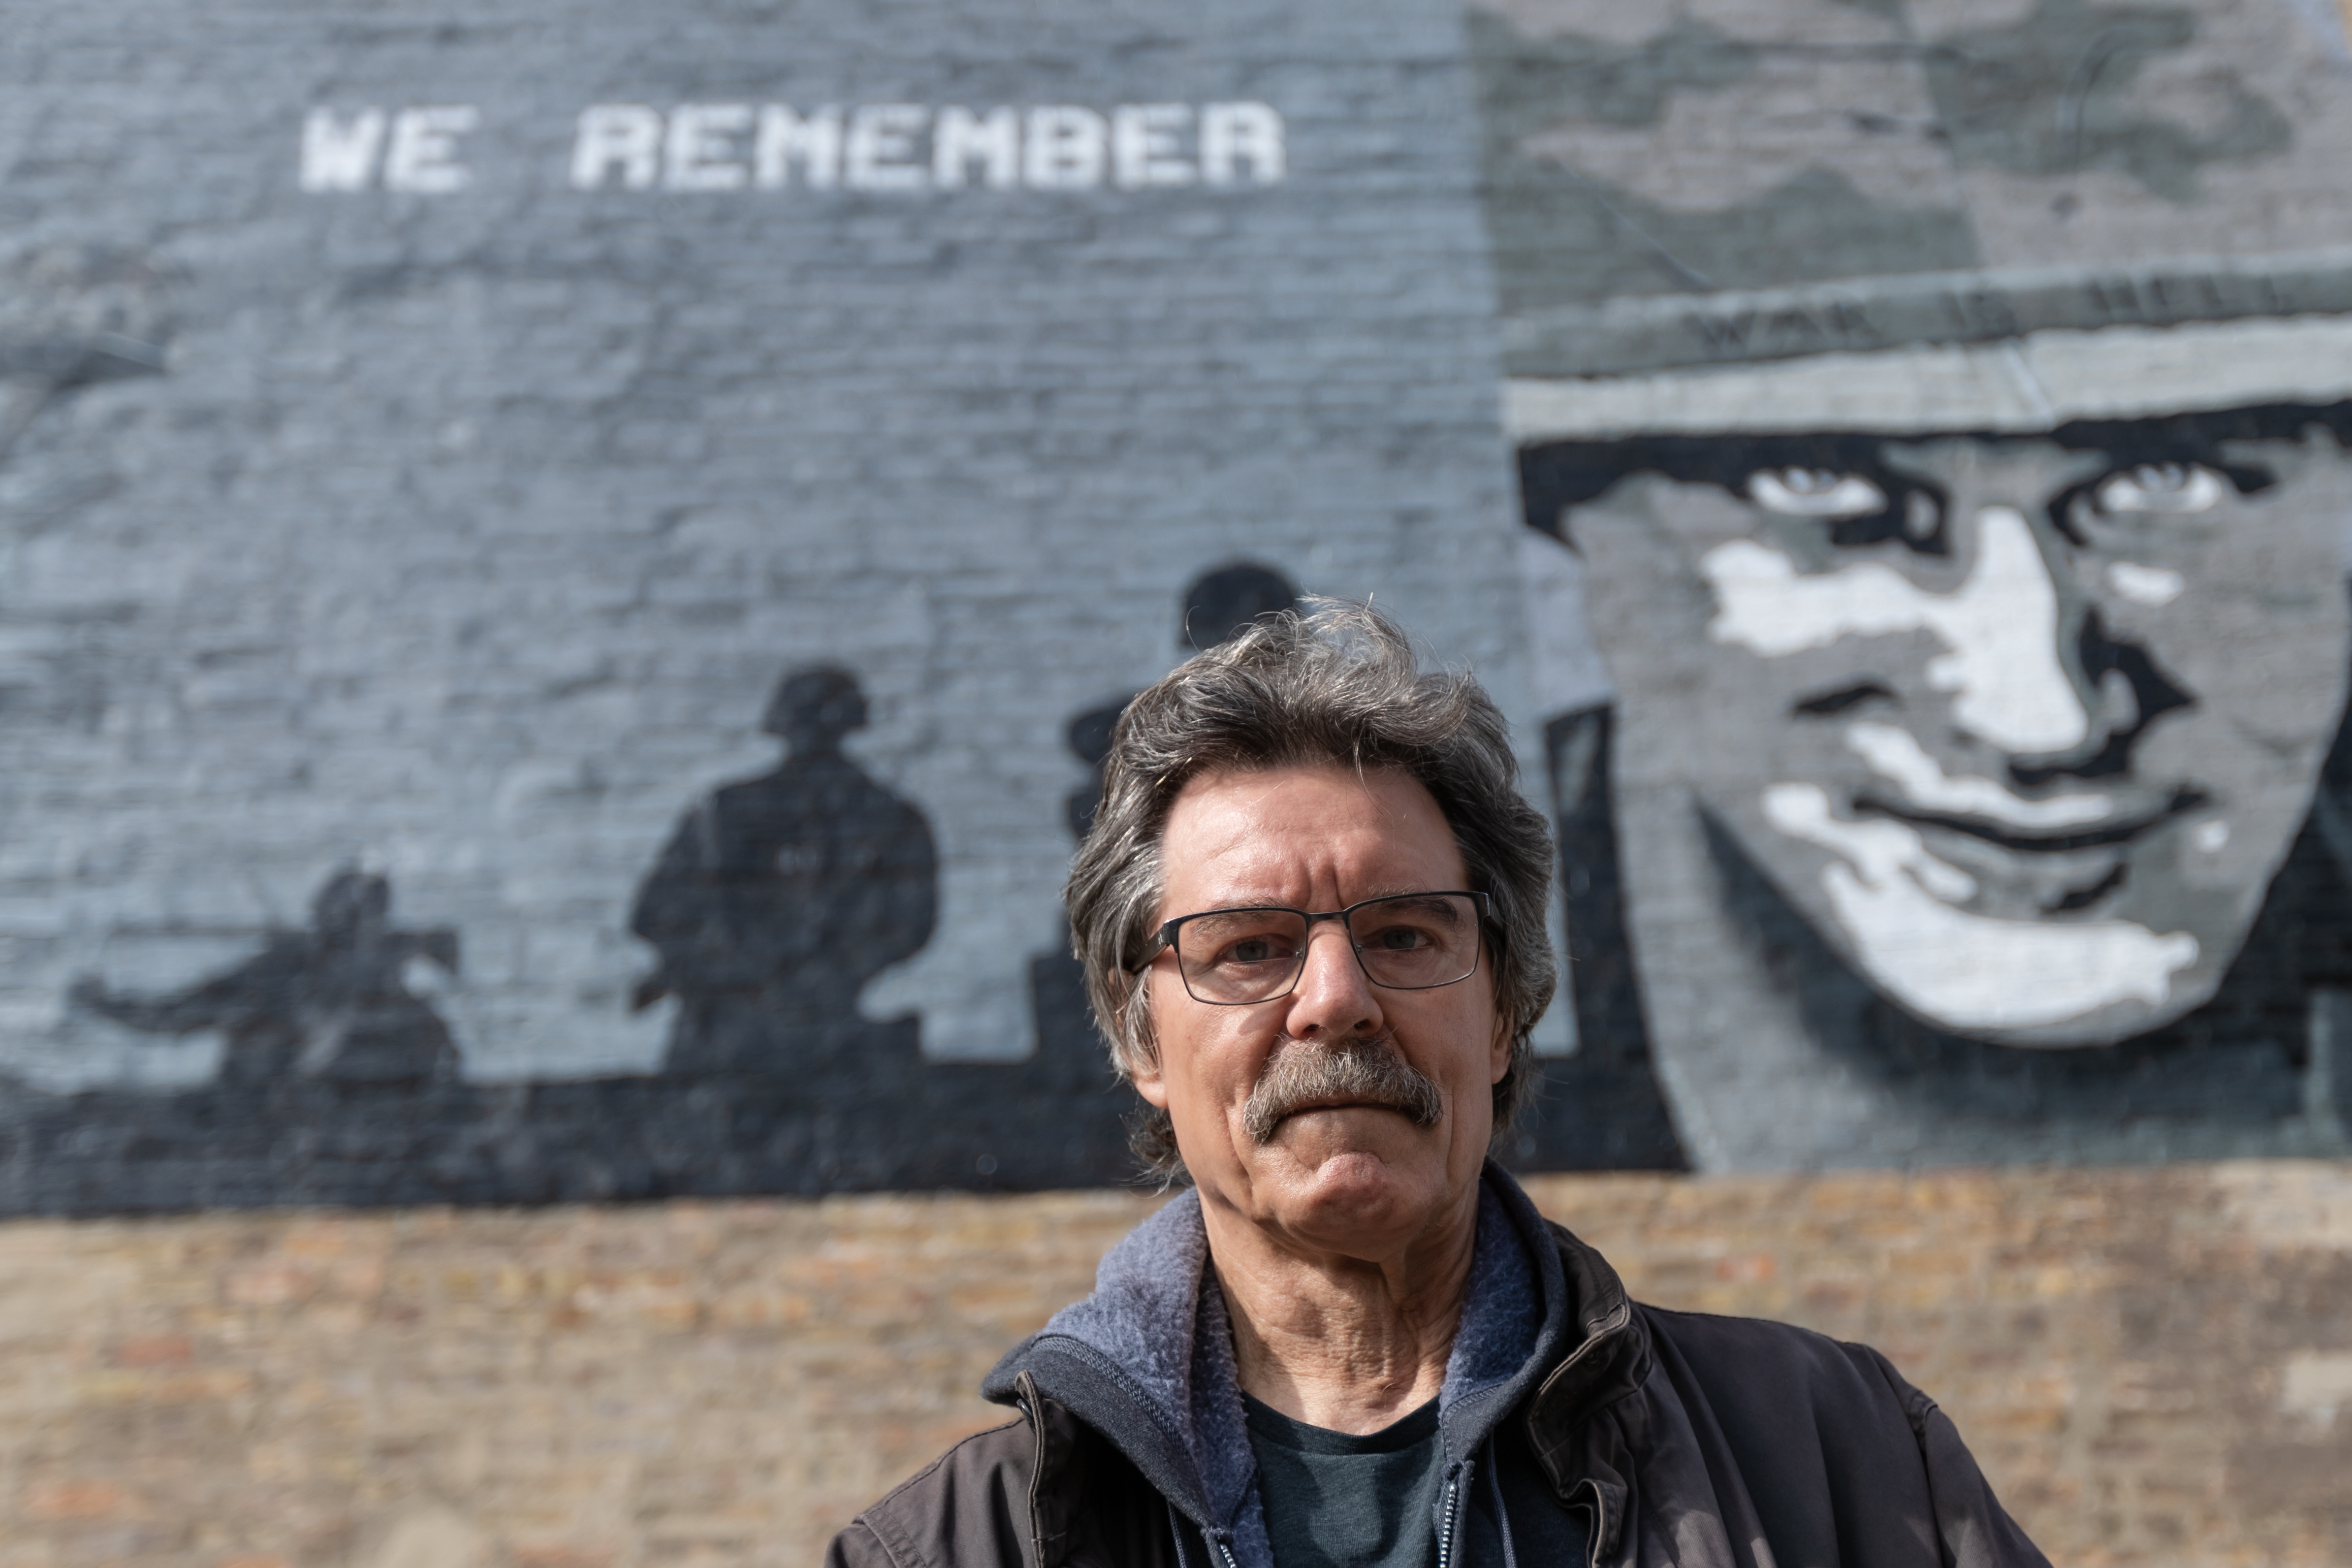 George Zaremba, who took up art late in life in part to better cope with having Parkinson's disease, stands in front of a mural he created to honor soldiers who served in Vietnam. The mural is on the corner of North Sacramento Boulevard and West Carroll Avenue.